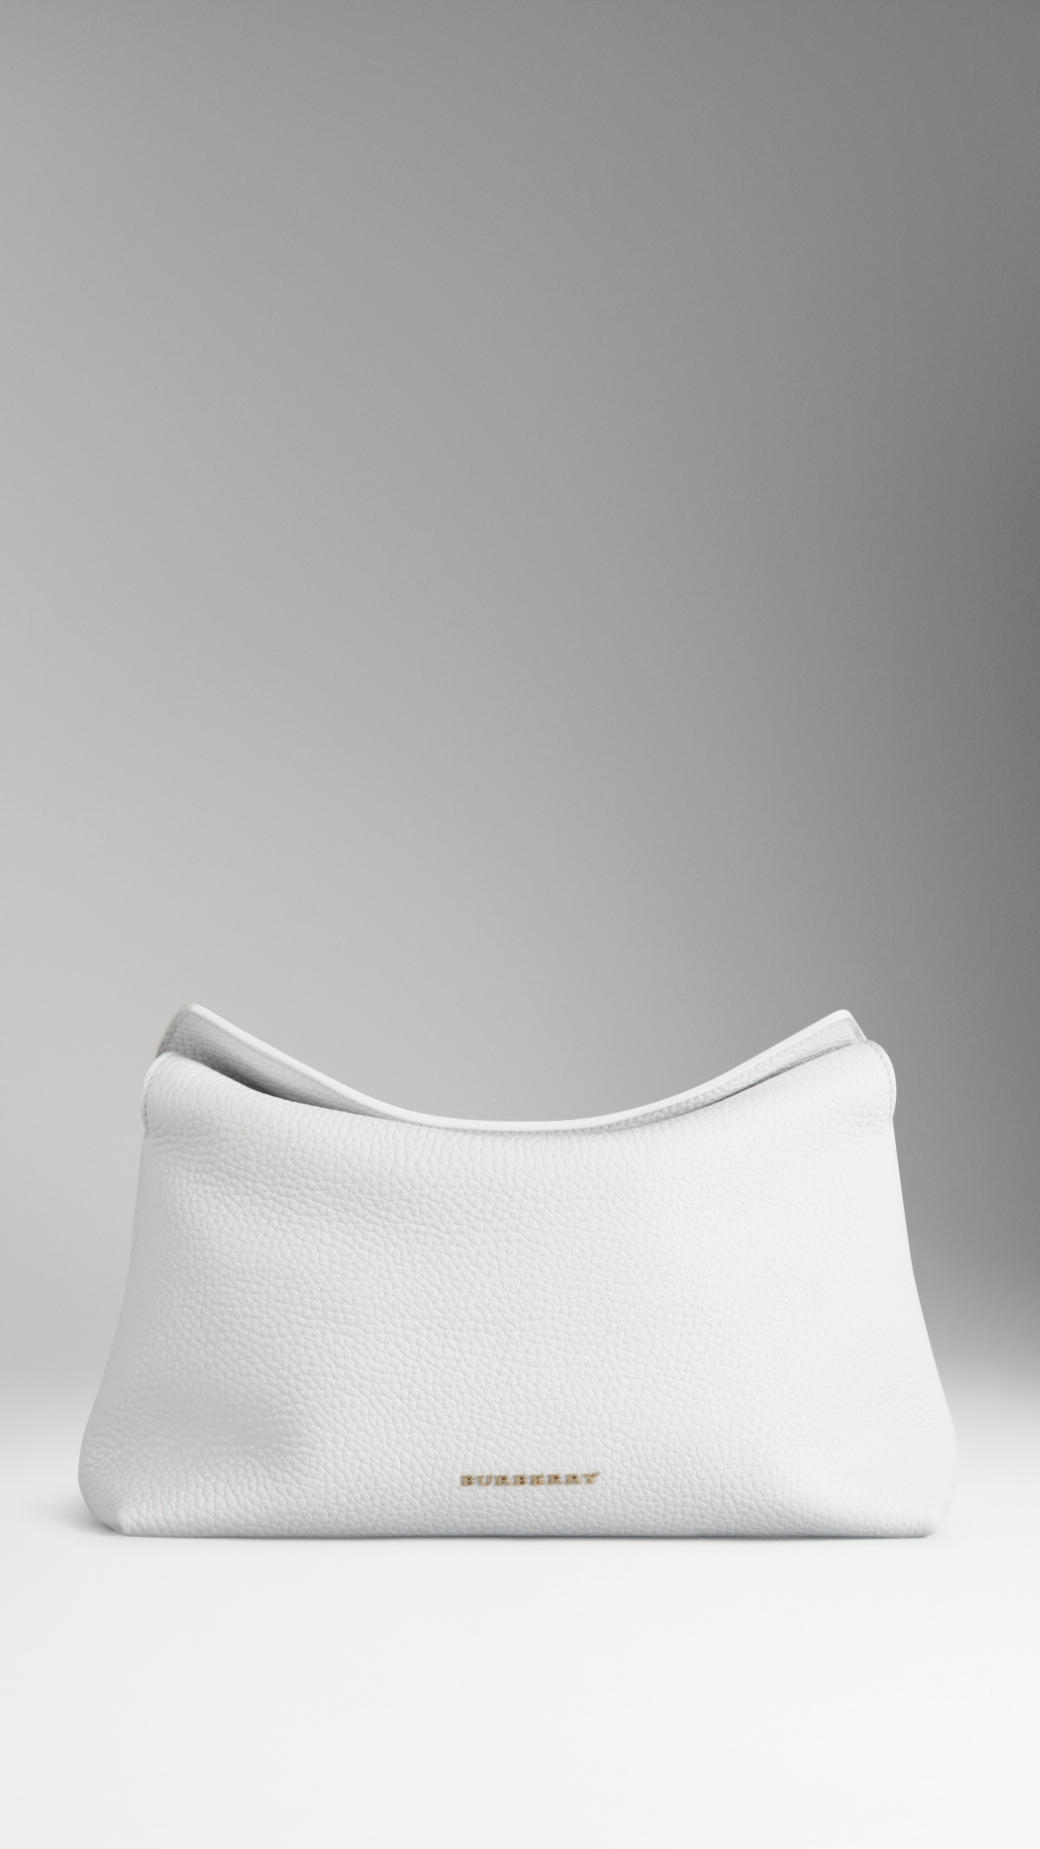 Lyst Burberry Grainy Leather Clutch Bag In White